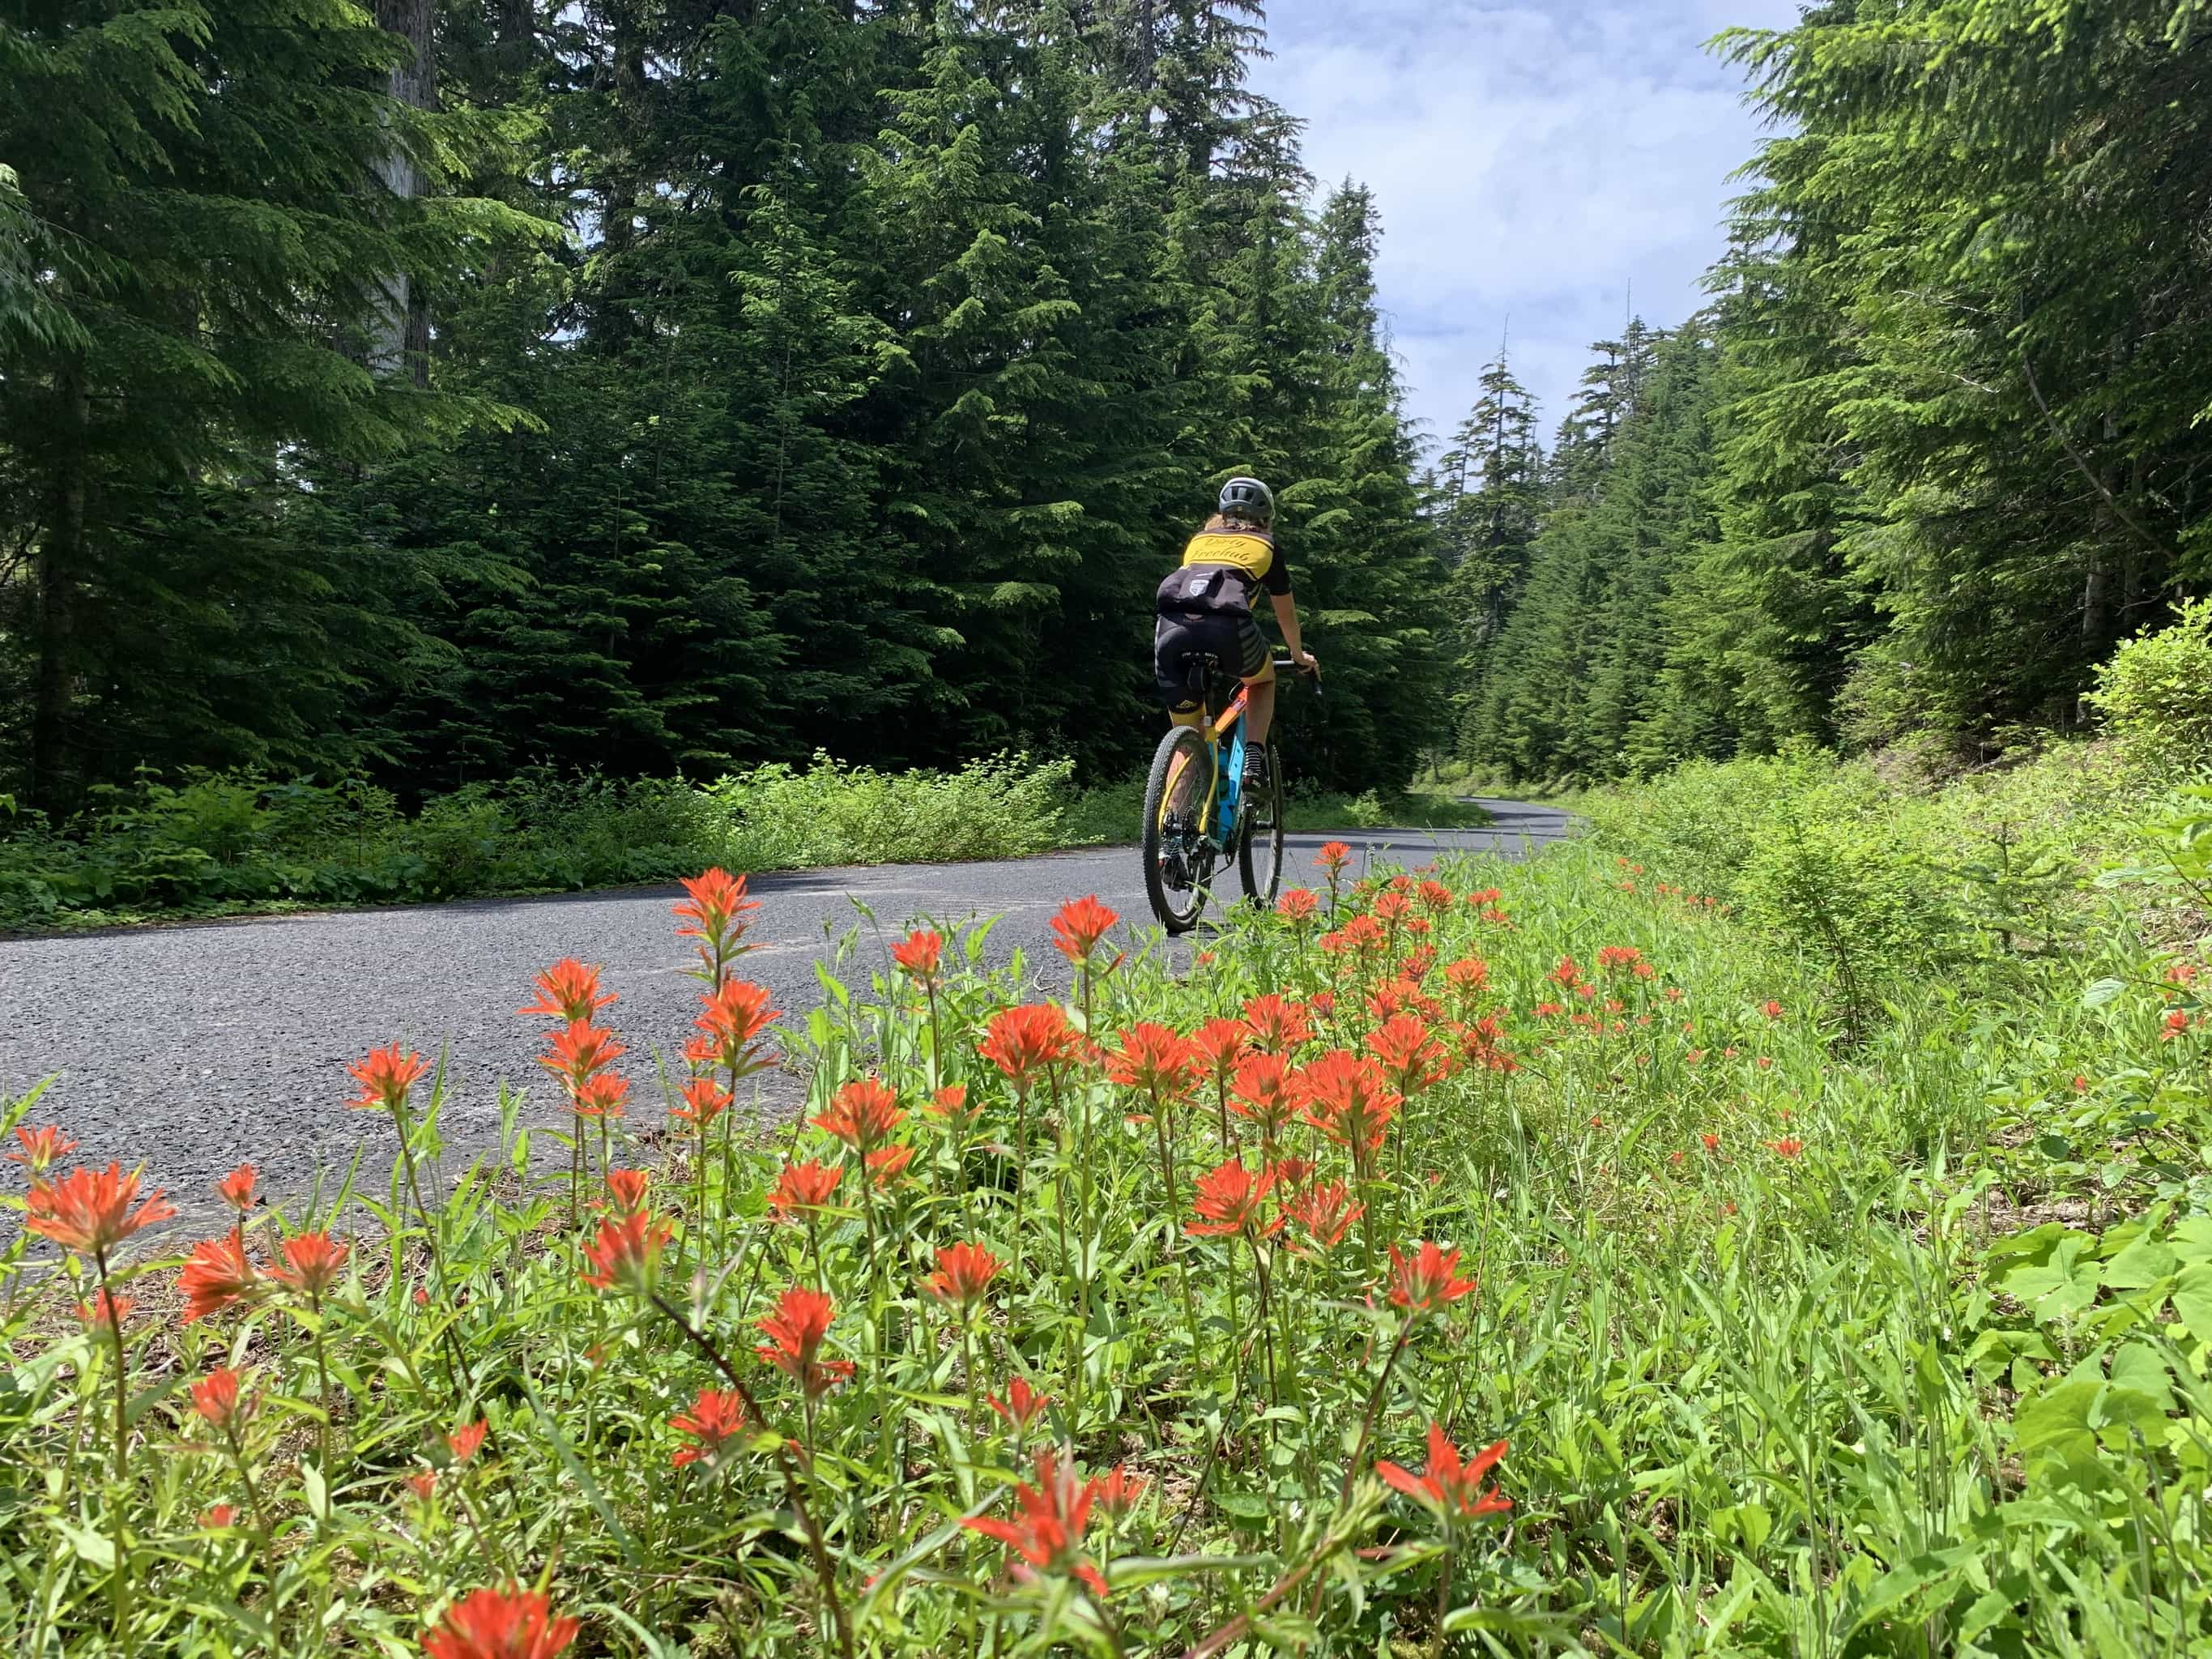 Cyclist descending paved portion of NF-54 near Carson, WA.